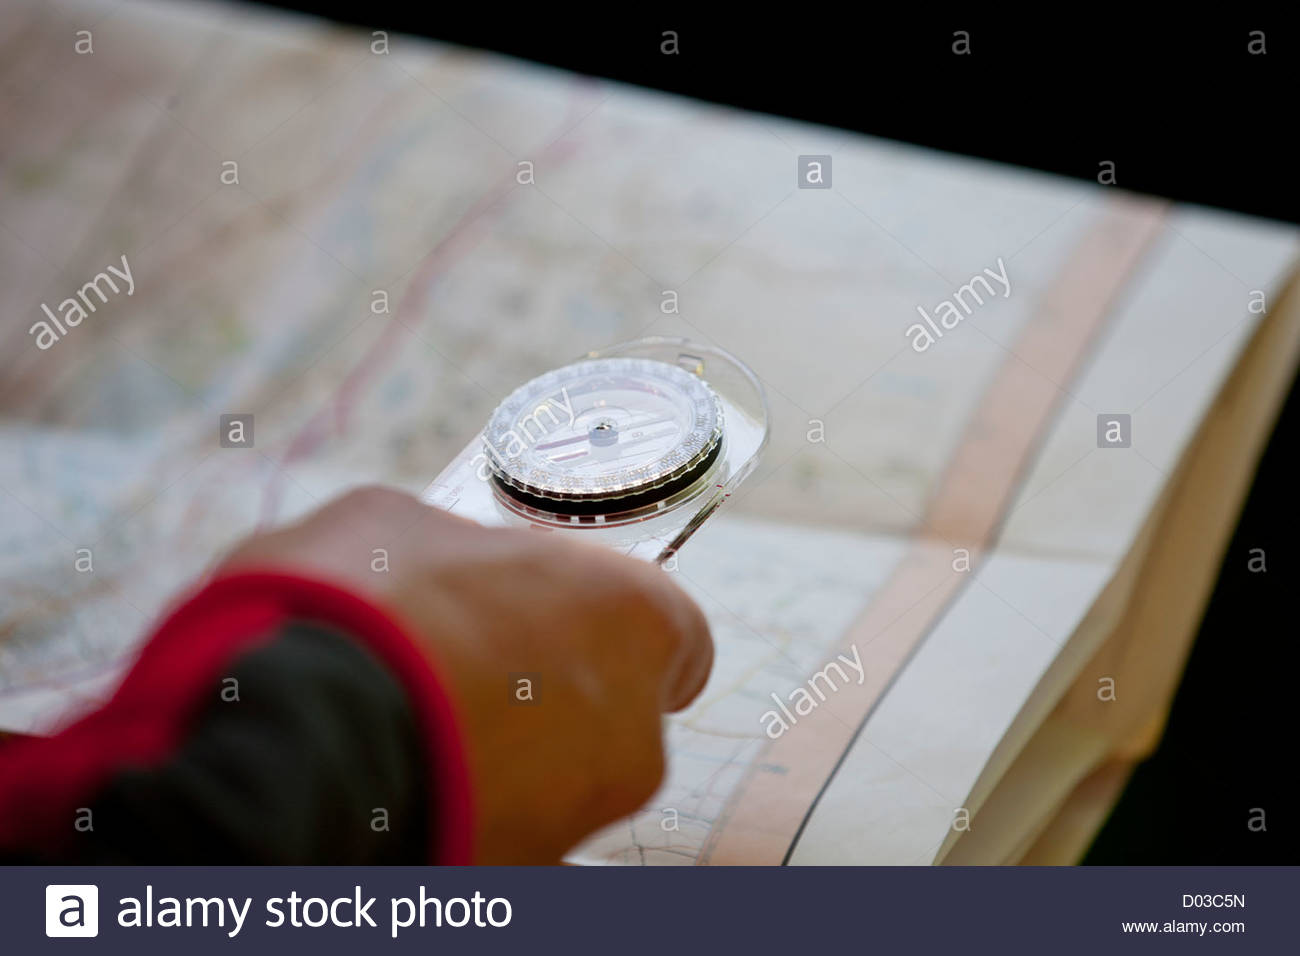 A man holding a map and compass, close up Stock Photo